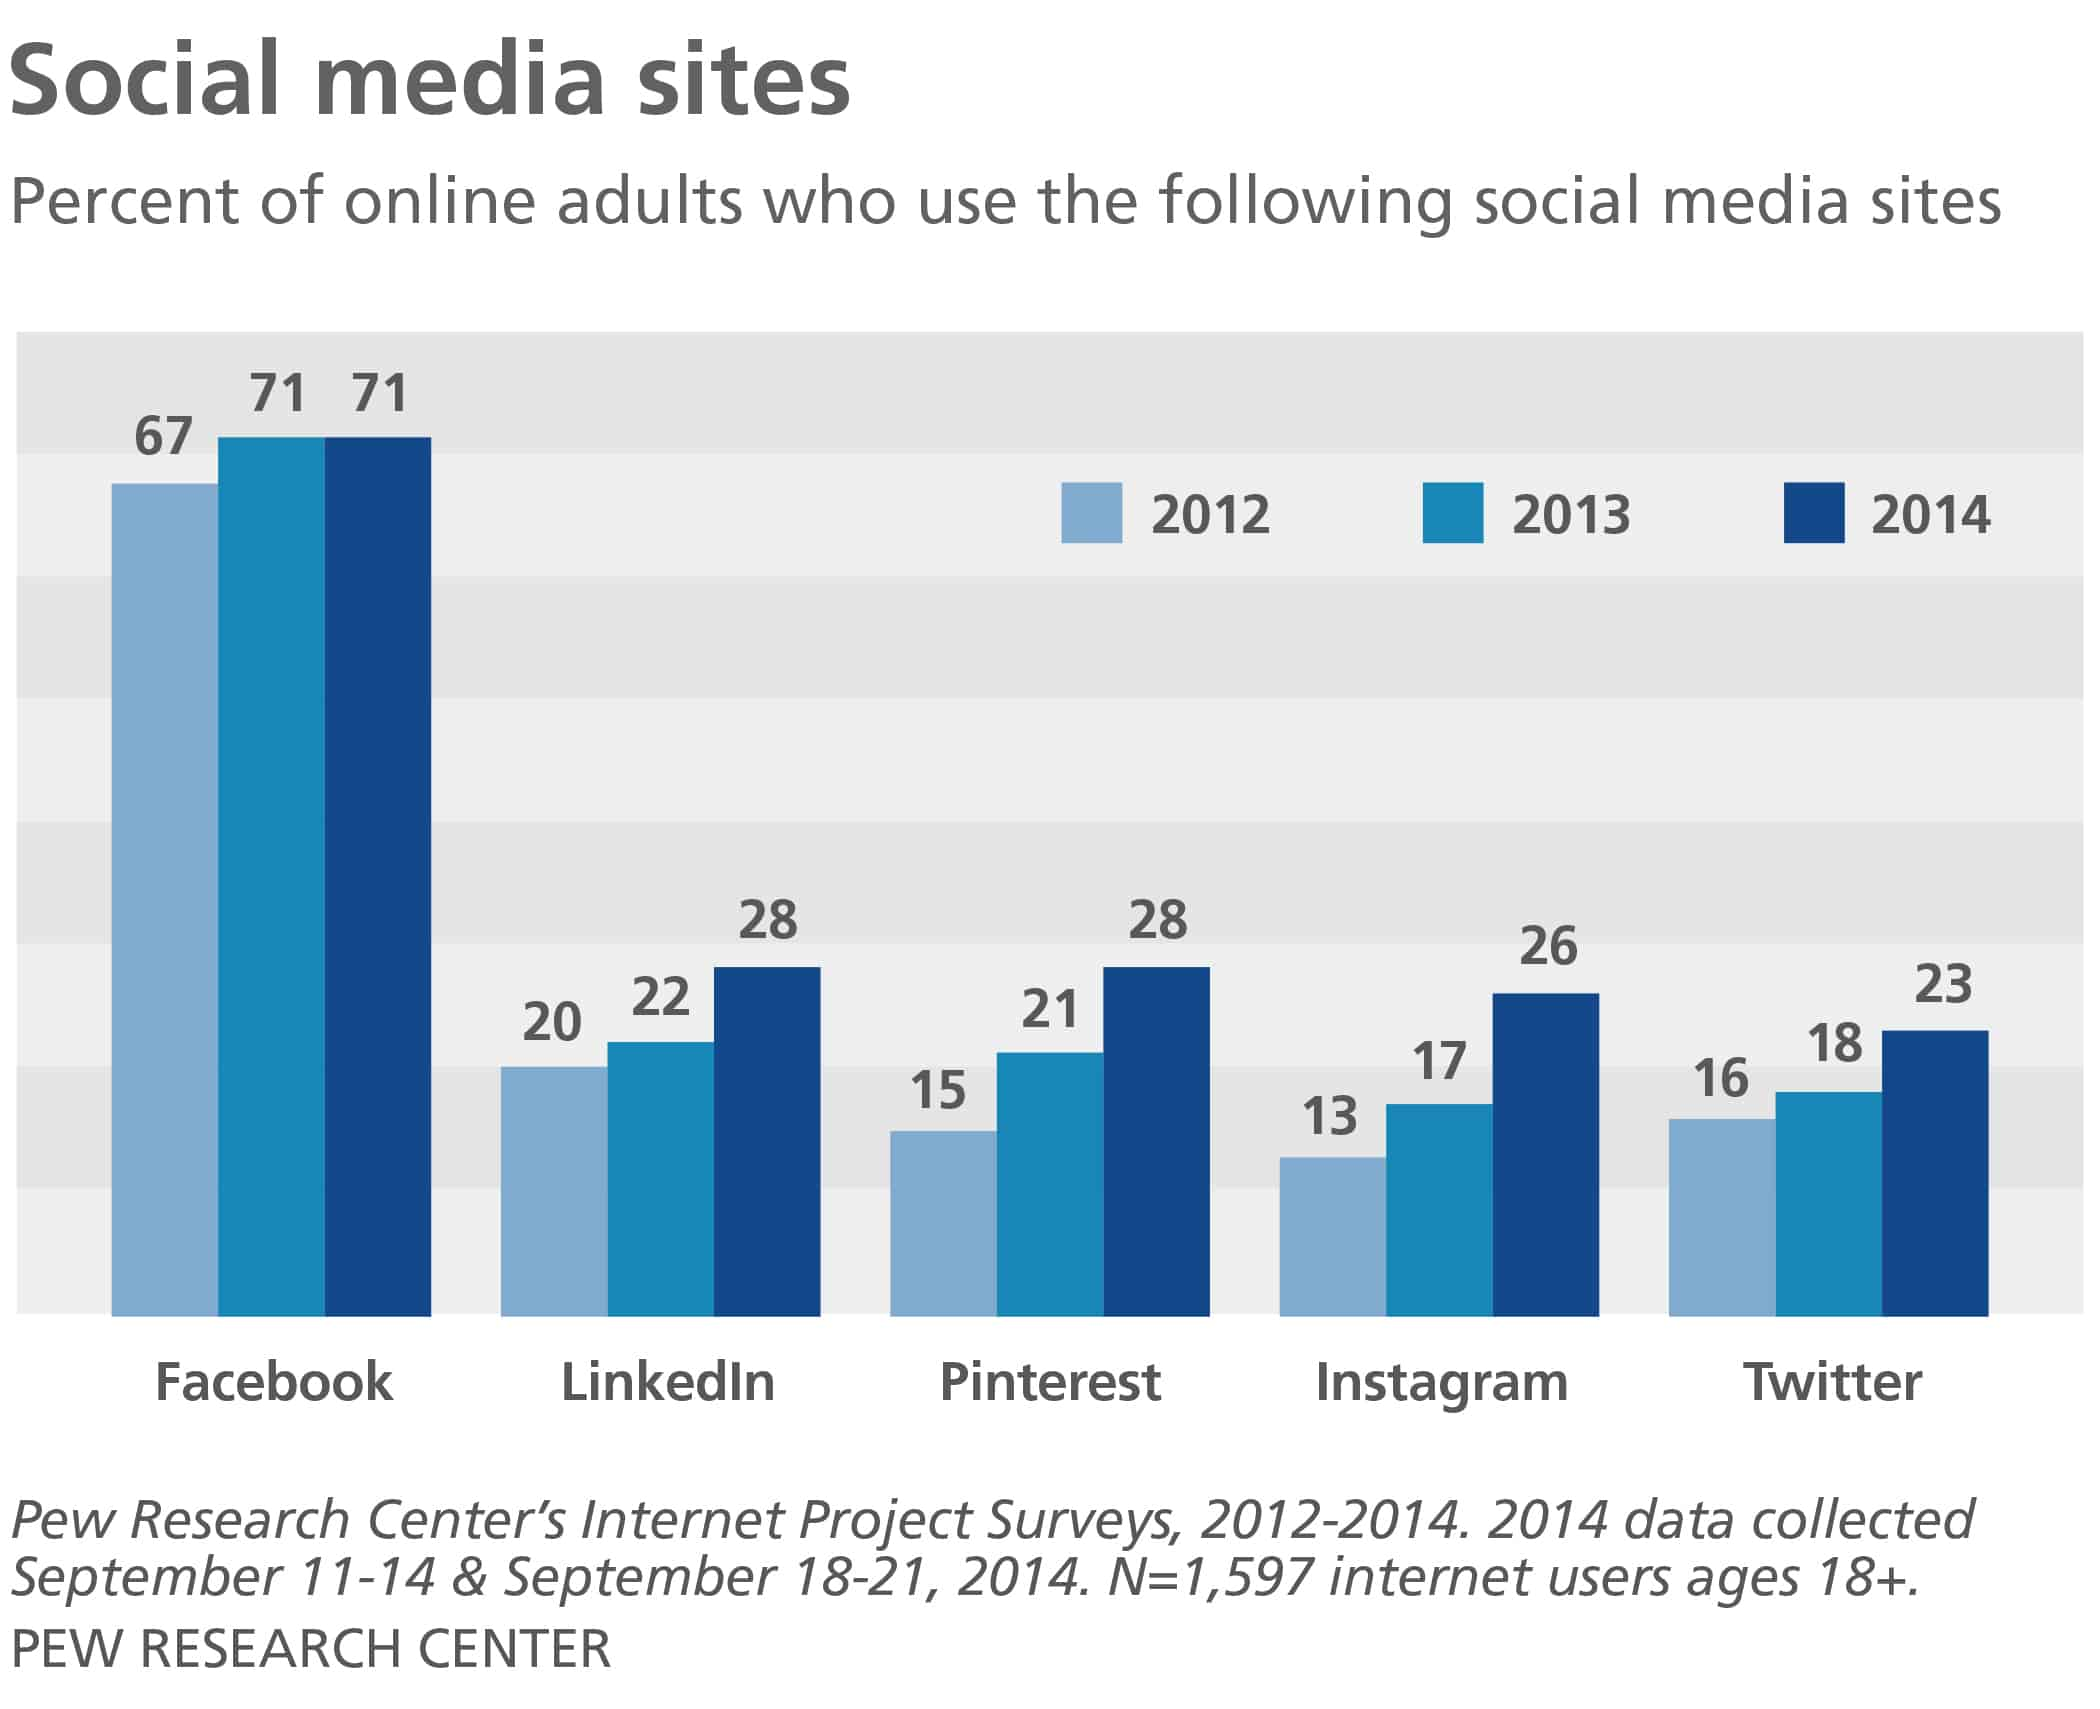 Graph showing the percentage of online adults who use the following social media sites